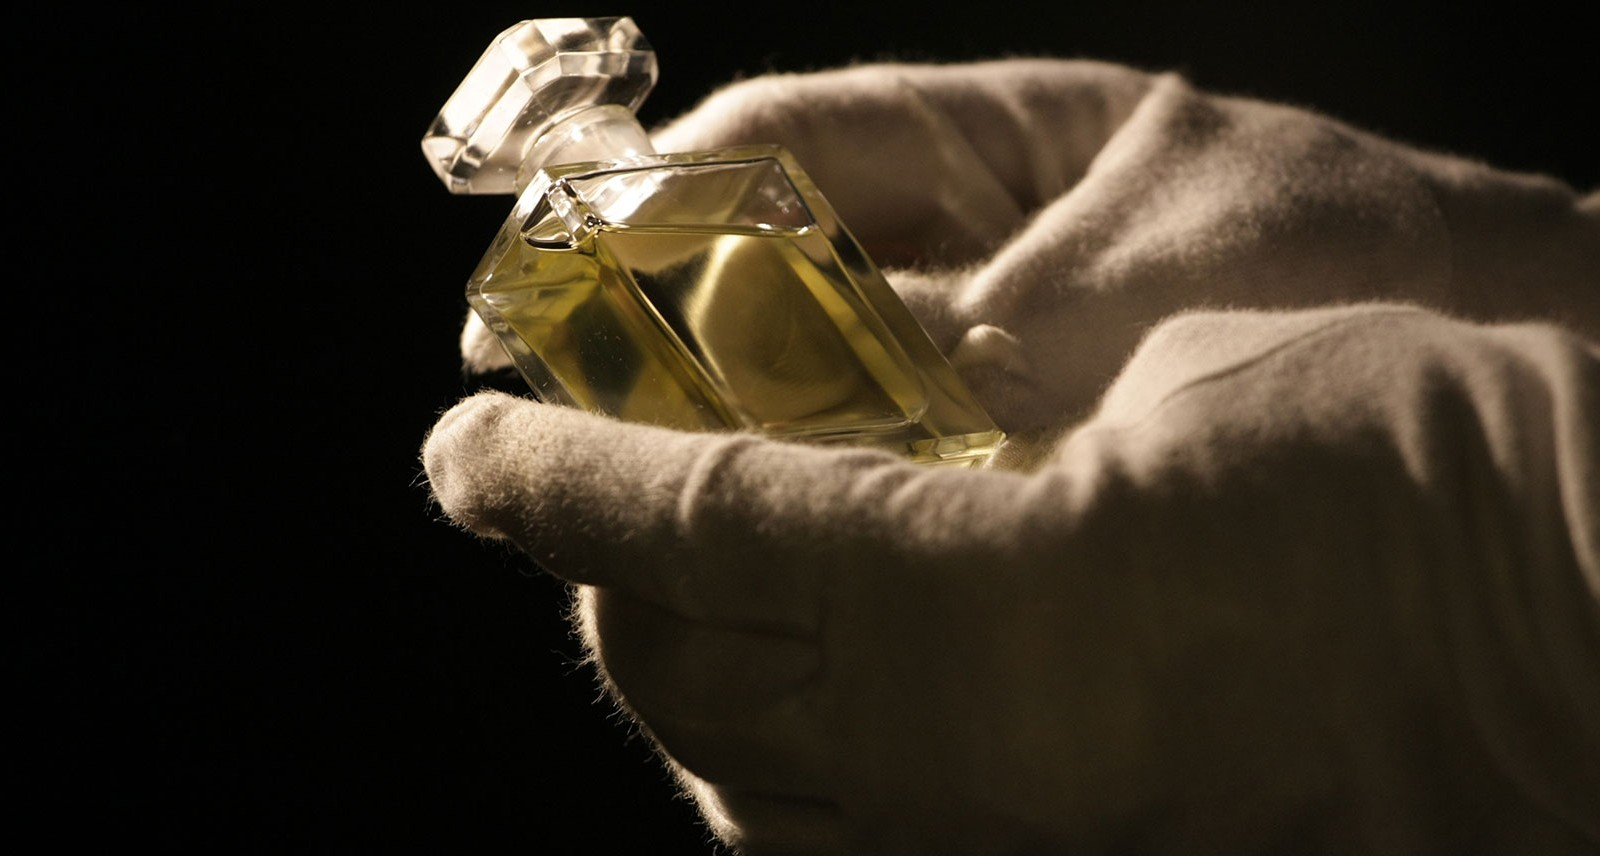 Meet the Parisian Genius Behind the World's Greatest Scents